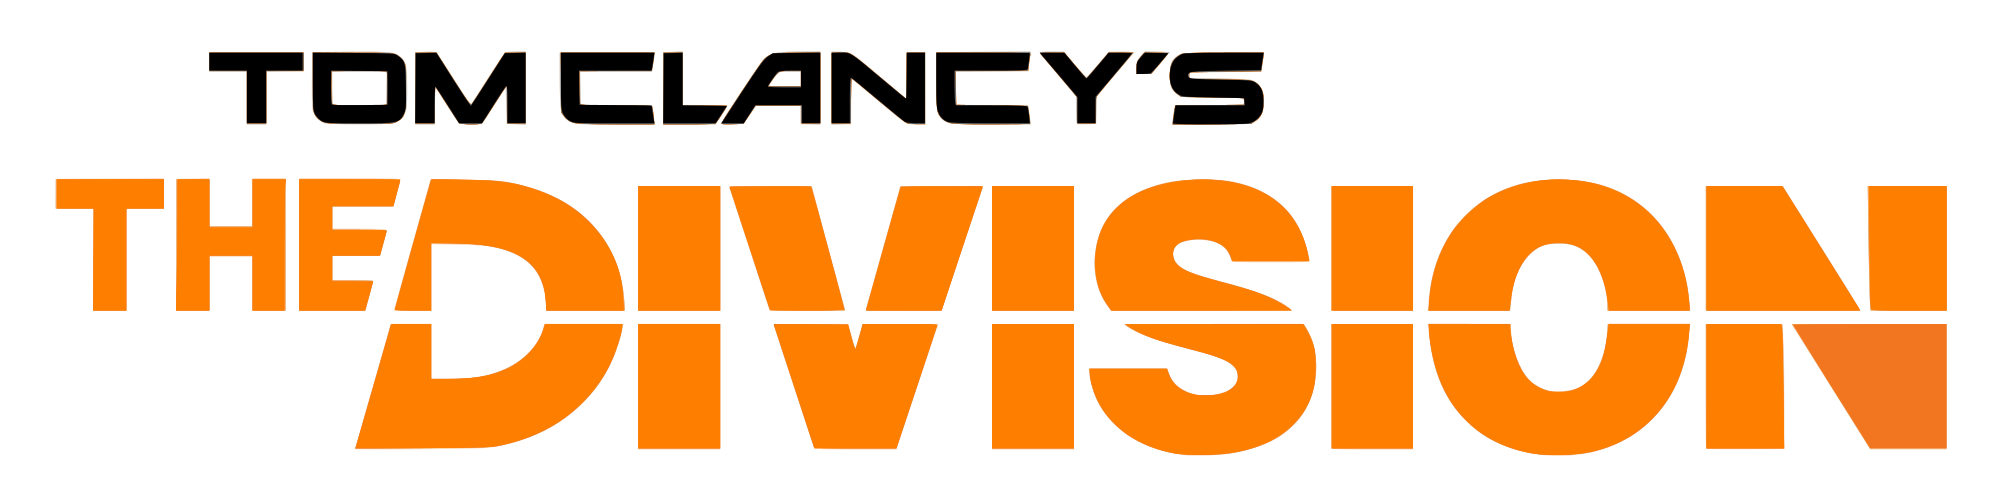 svg freeuse library division vector tom clancy's the #93362680